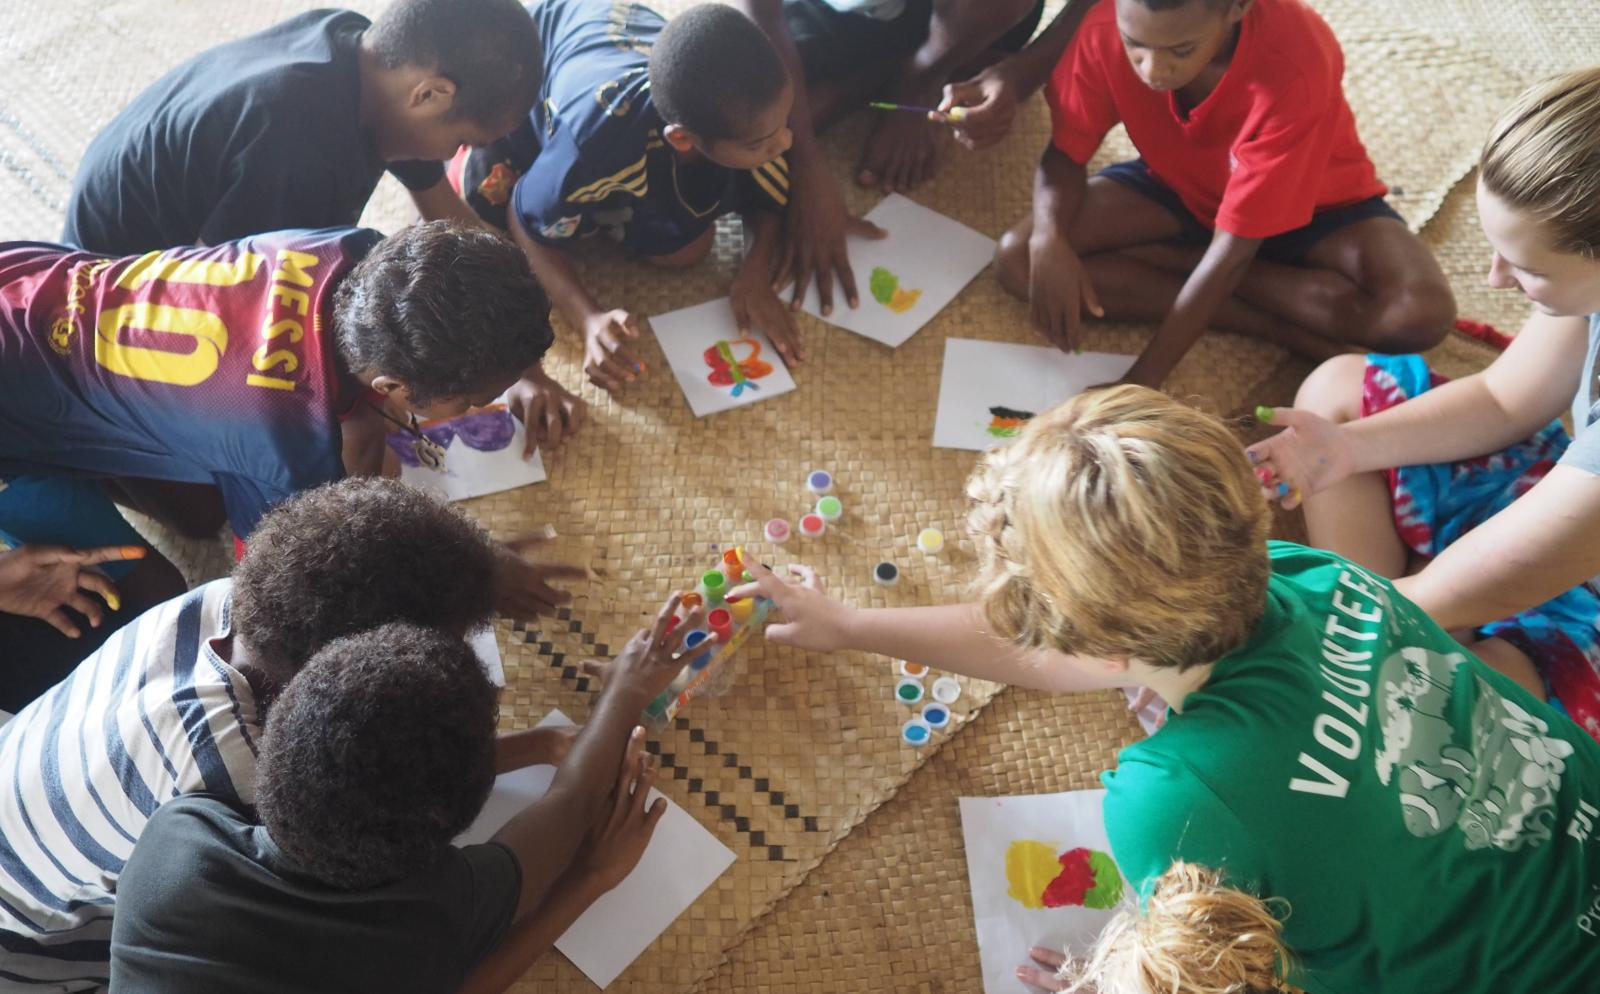 Projects Abroad volunteers play educational games with children from a nursery school rather than an orphanage abroad.